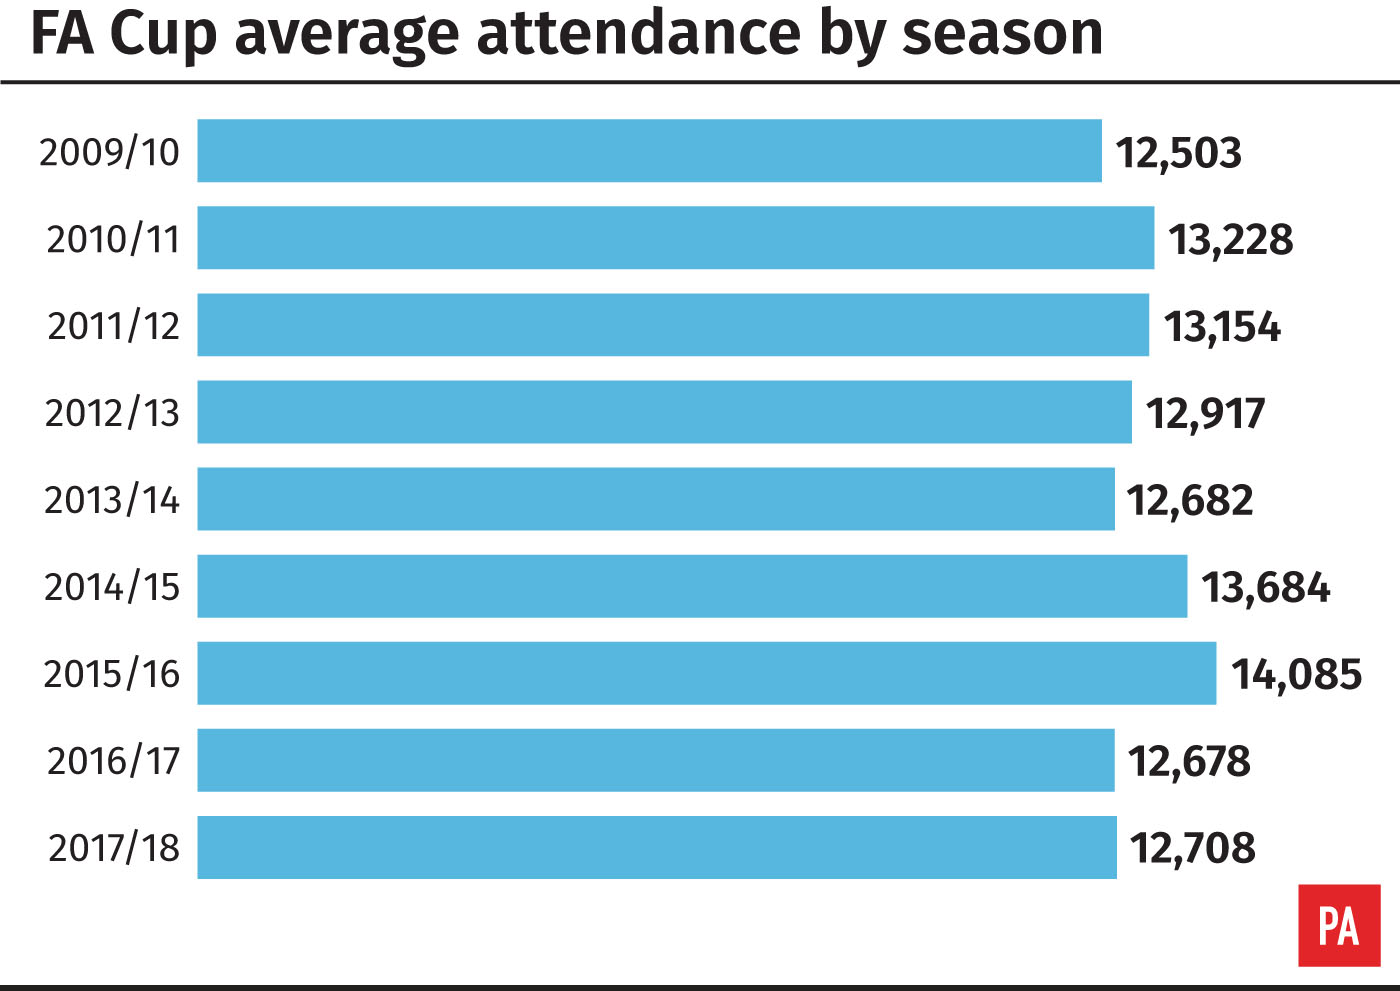 FA Cup average attendance 2009-10 to 2017-18